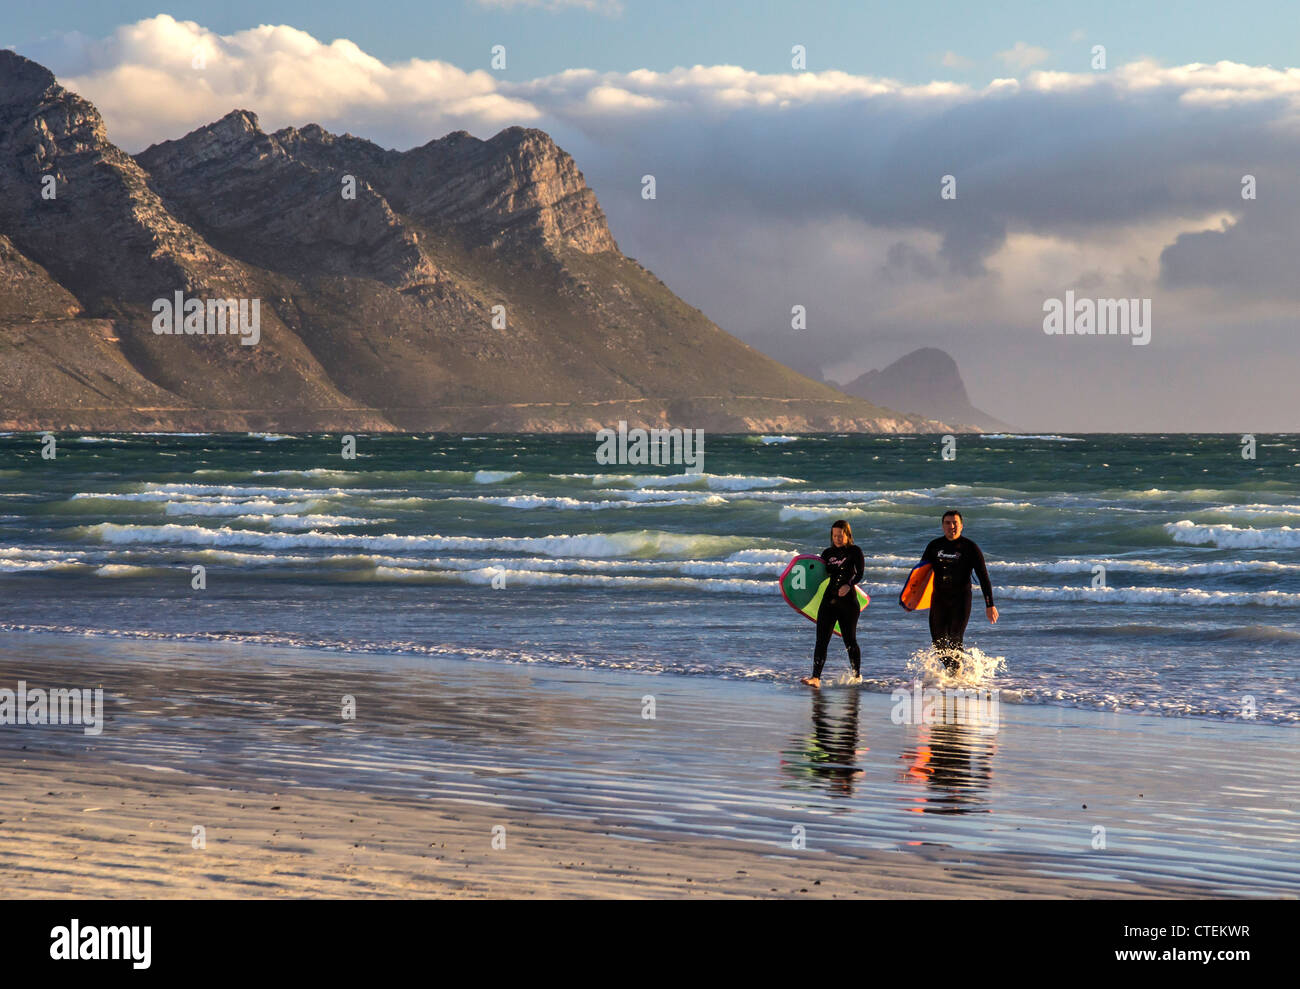 Two surfers in wet suits emerge from the ocean  - The Strand, Western Cape, South Africa - Stock Image